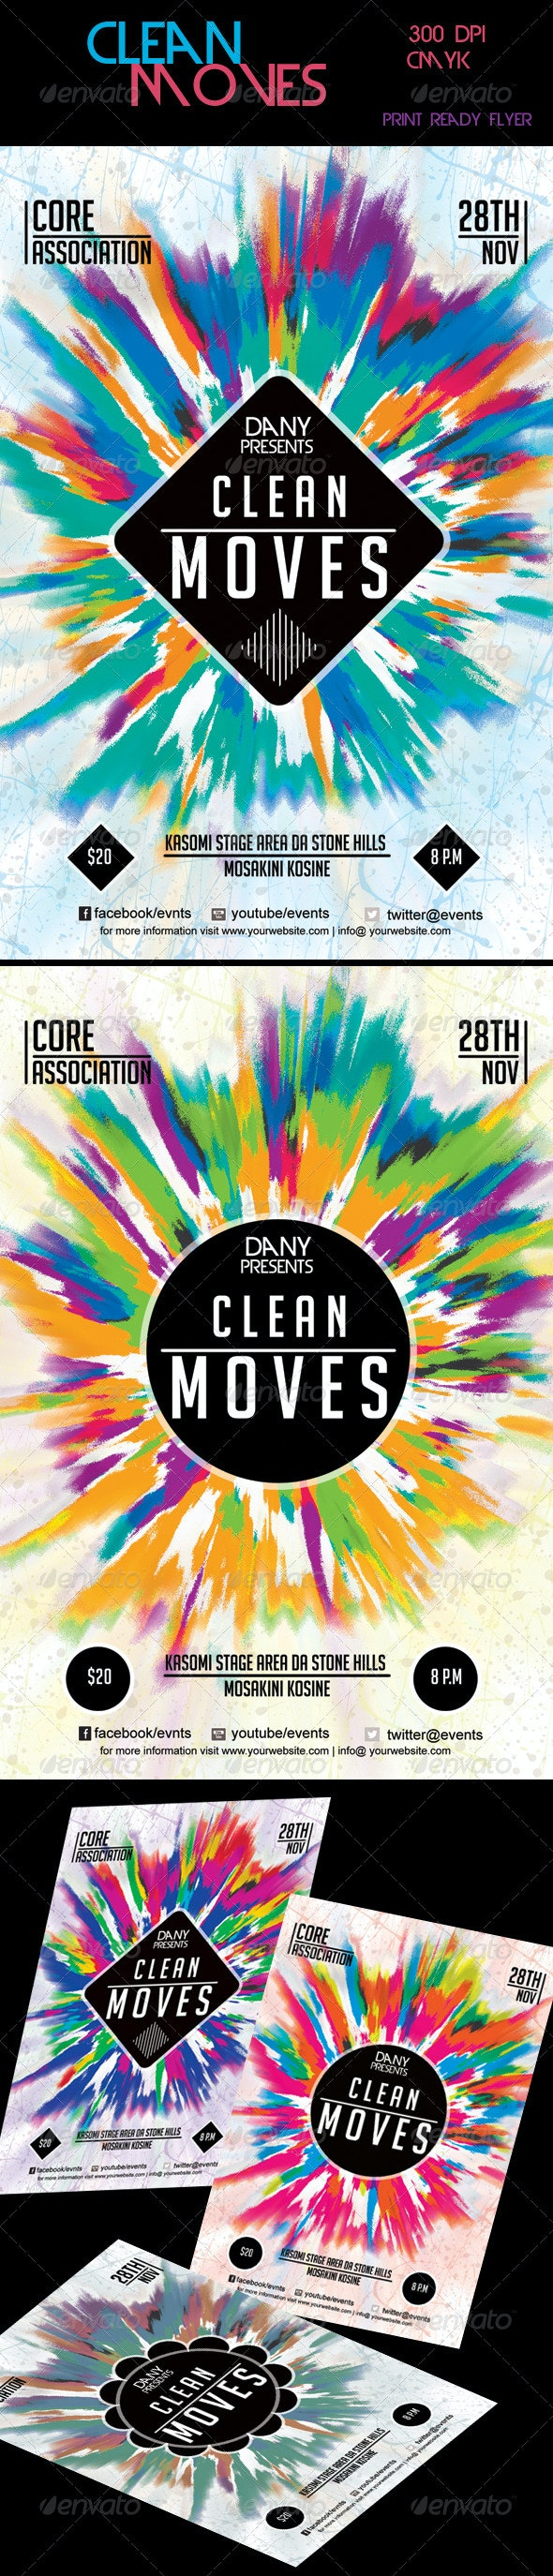 Clean Moves Flyer 2 - Miscellaneous Events